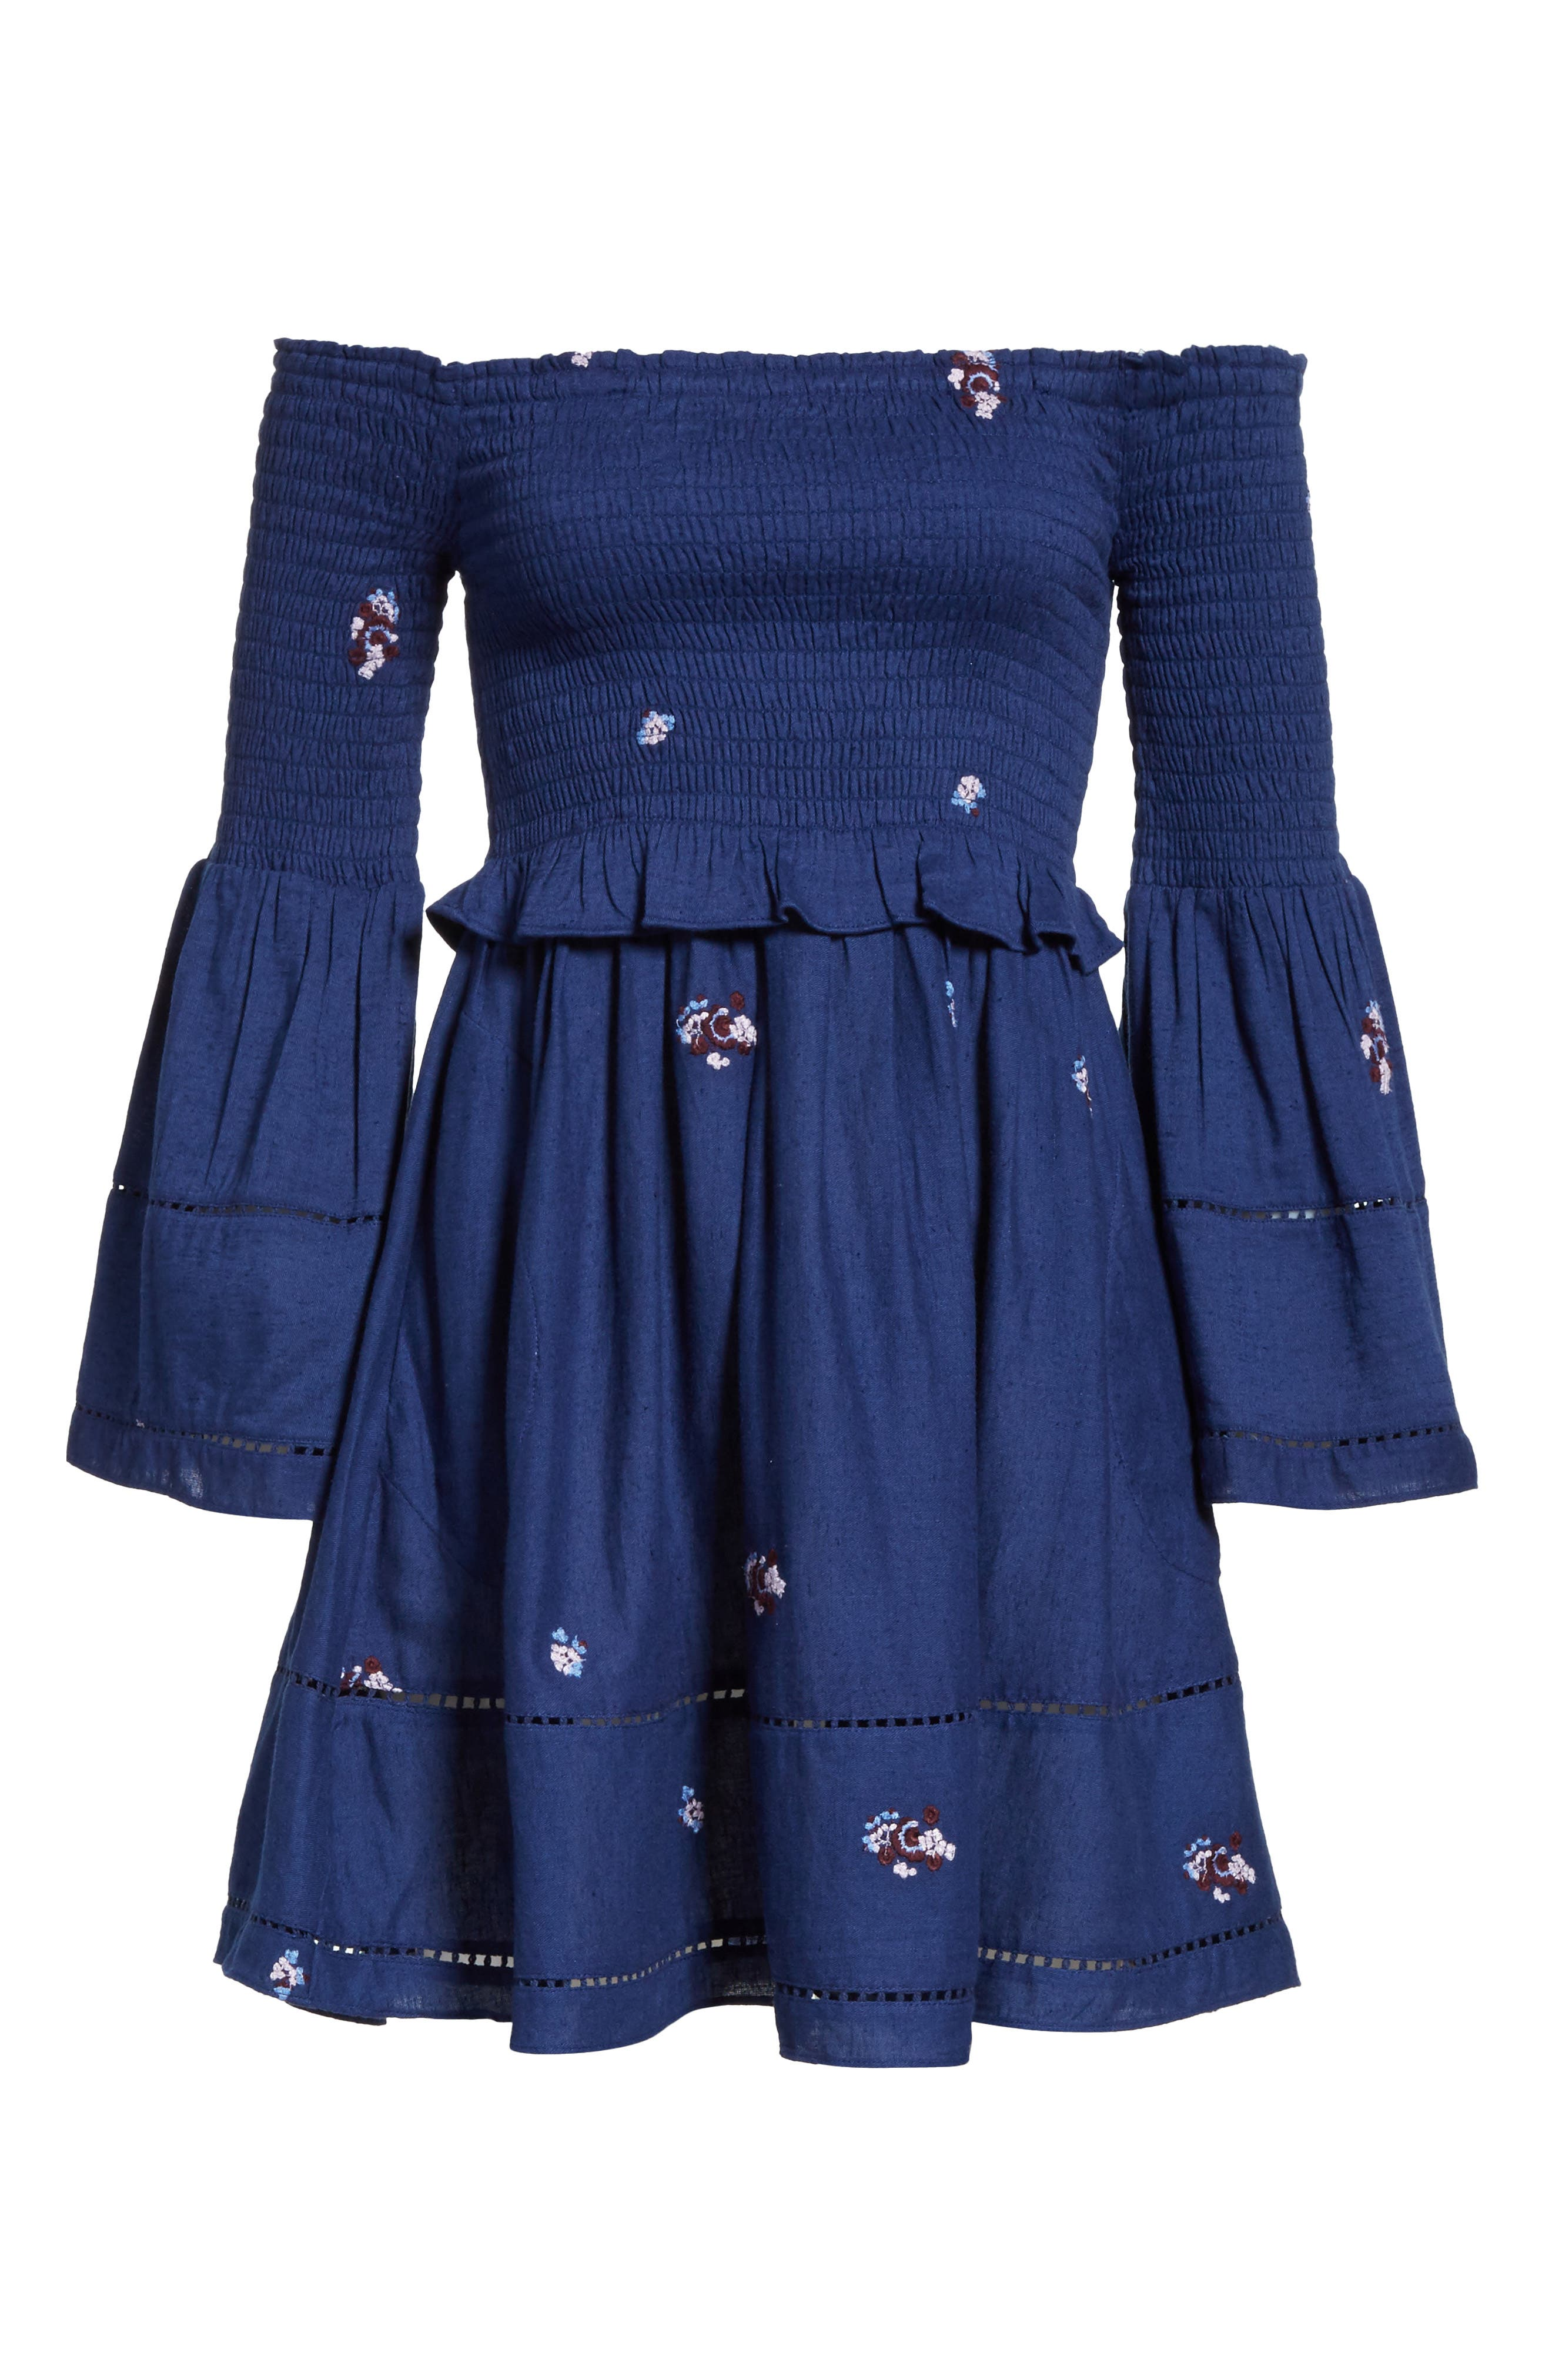 Counting Daisies Embroidered Off the Shoulder Dress,                             Alternate thumbnail 7, color,                             400